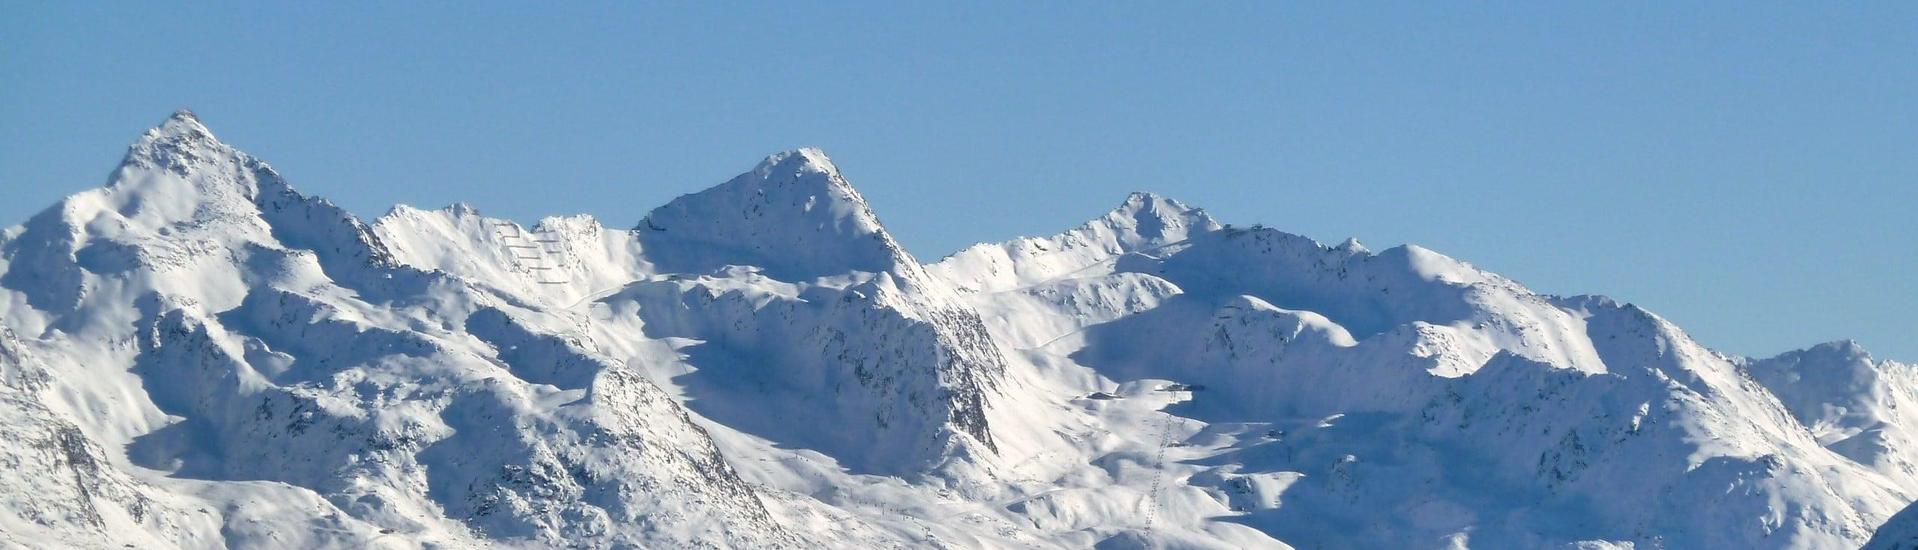 View over the sunny mountain landscape while learning to ski with the ski schools in Obergurgl-Hochgurgl.